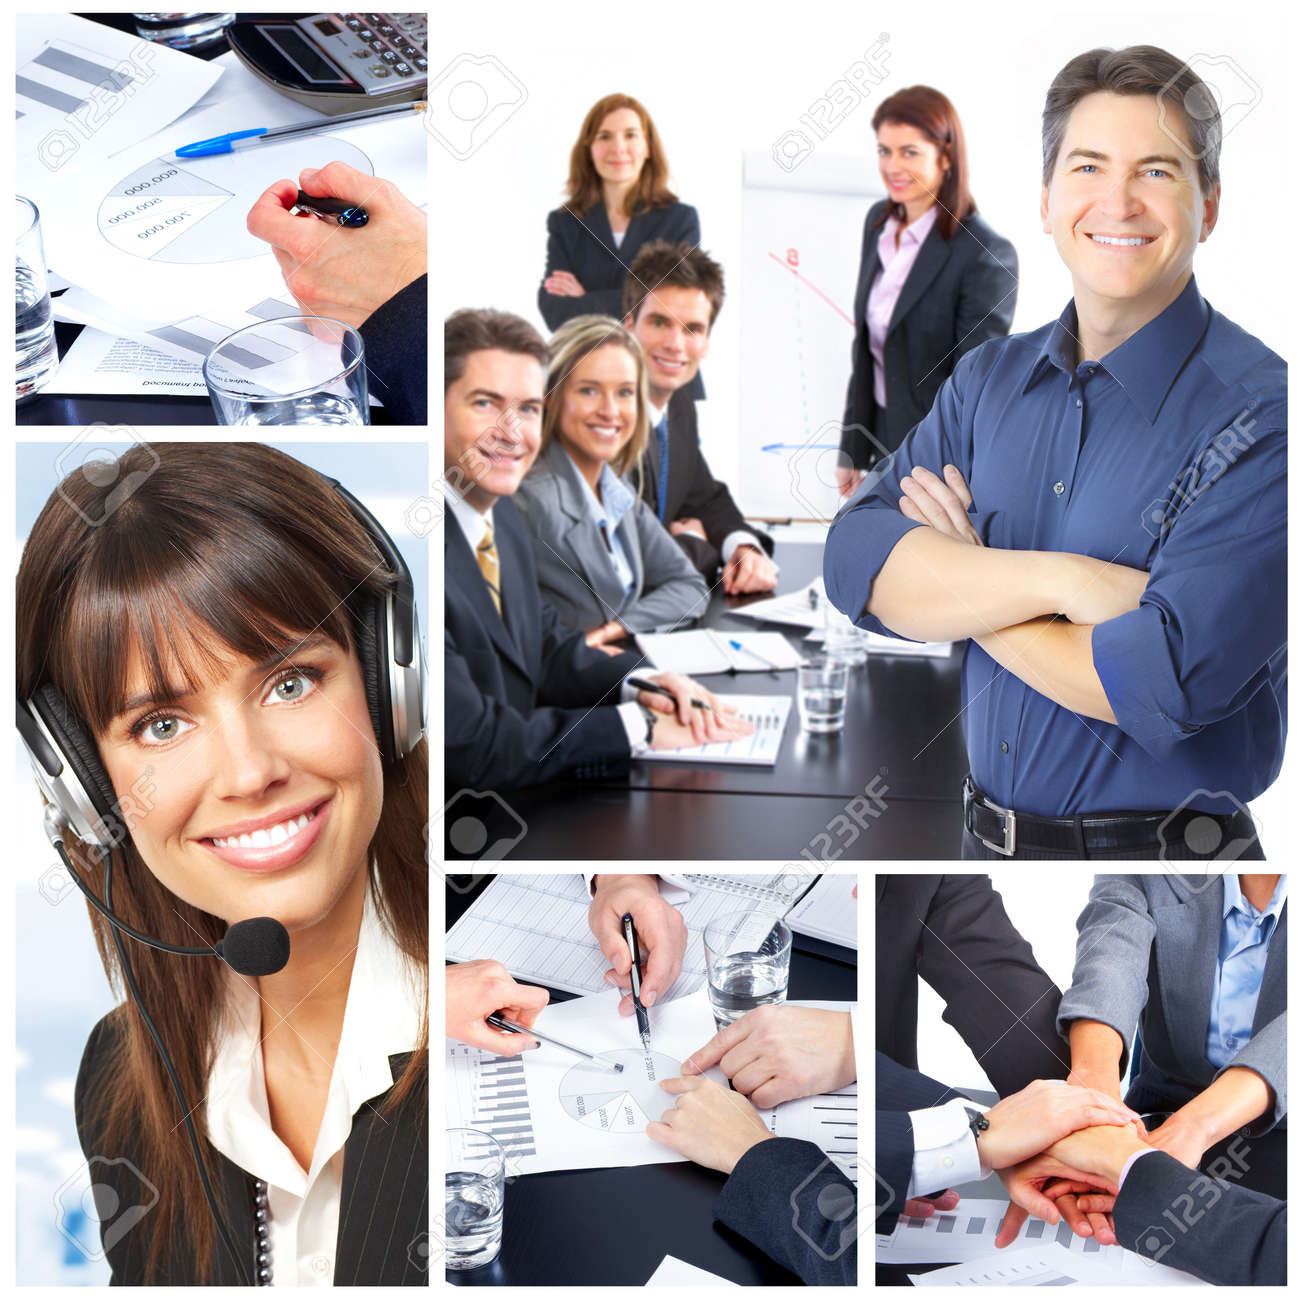 Business people. Business team. Teamwork Stock Photo - 8950298